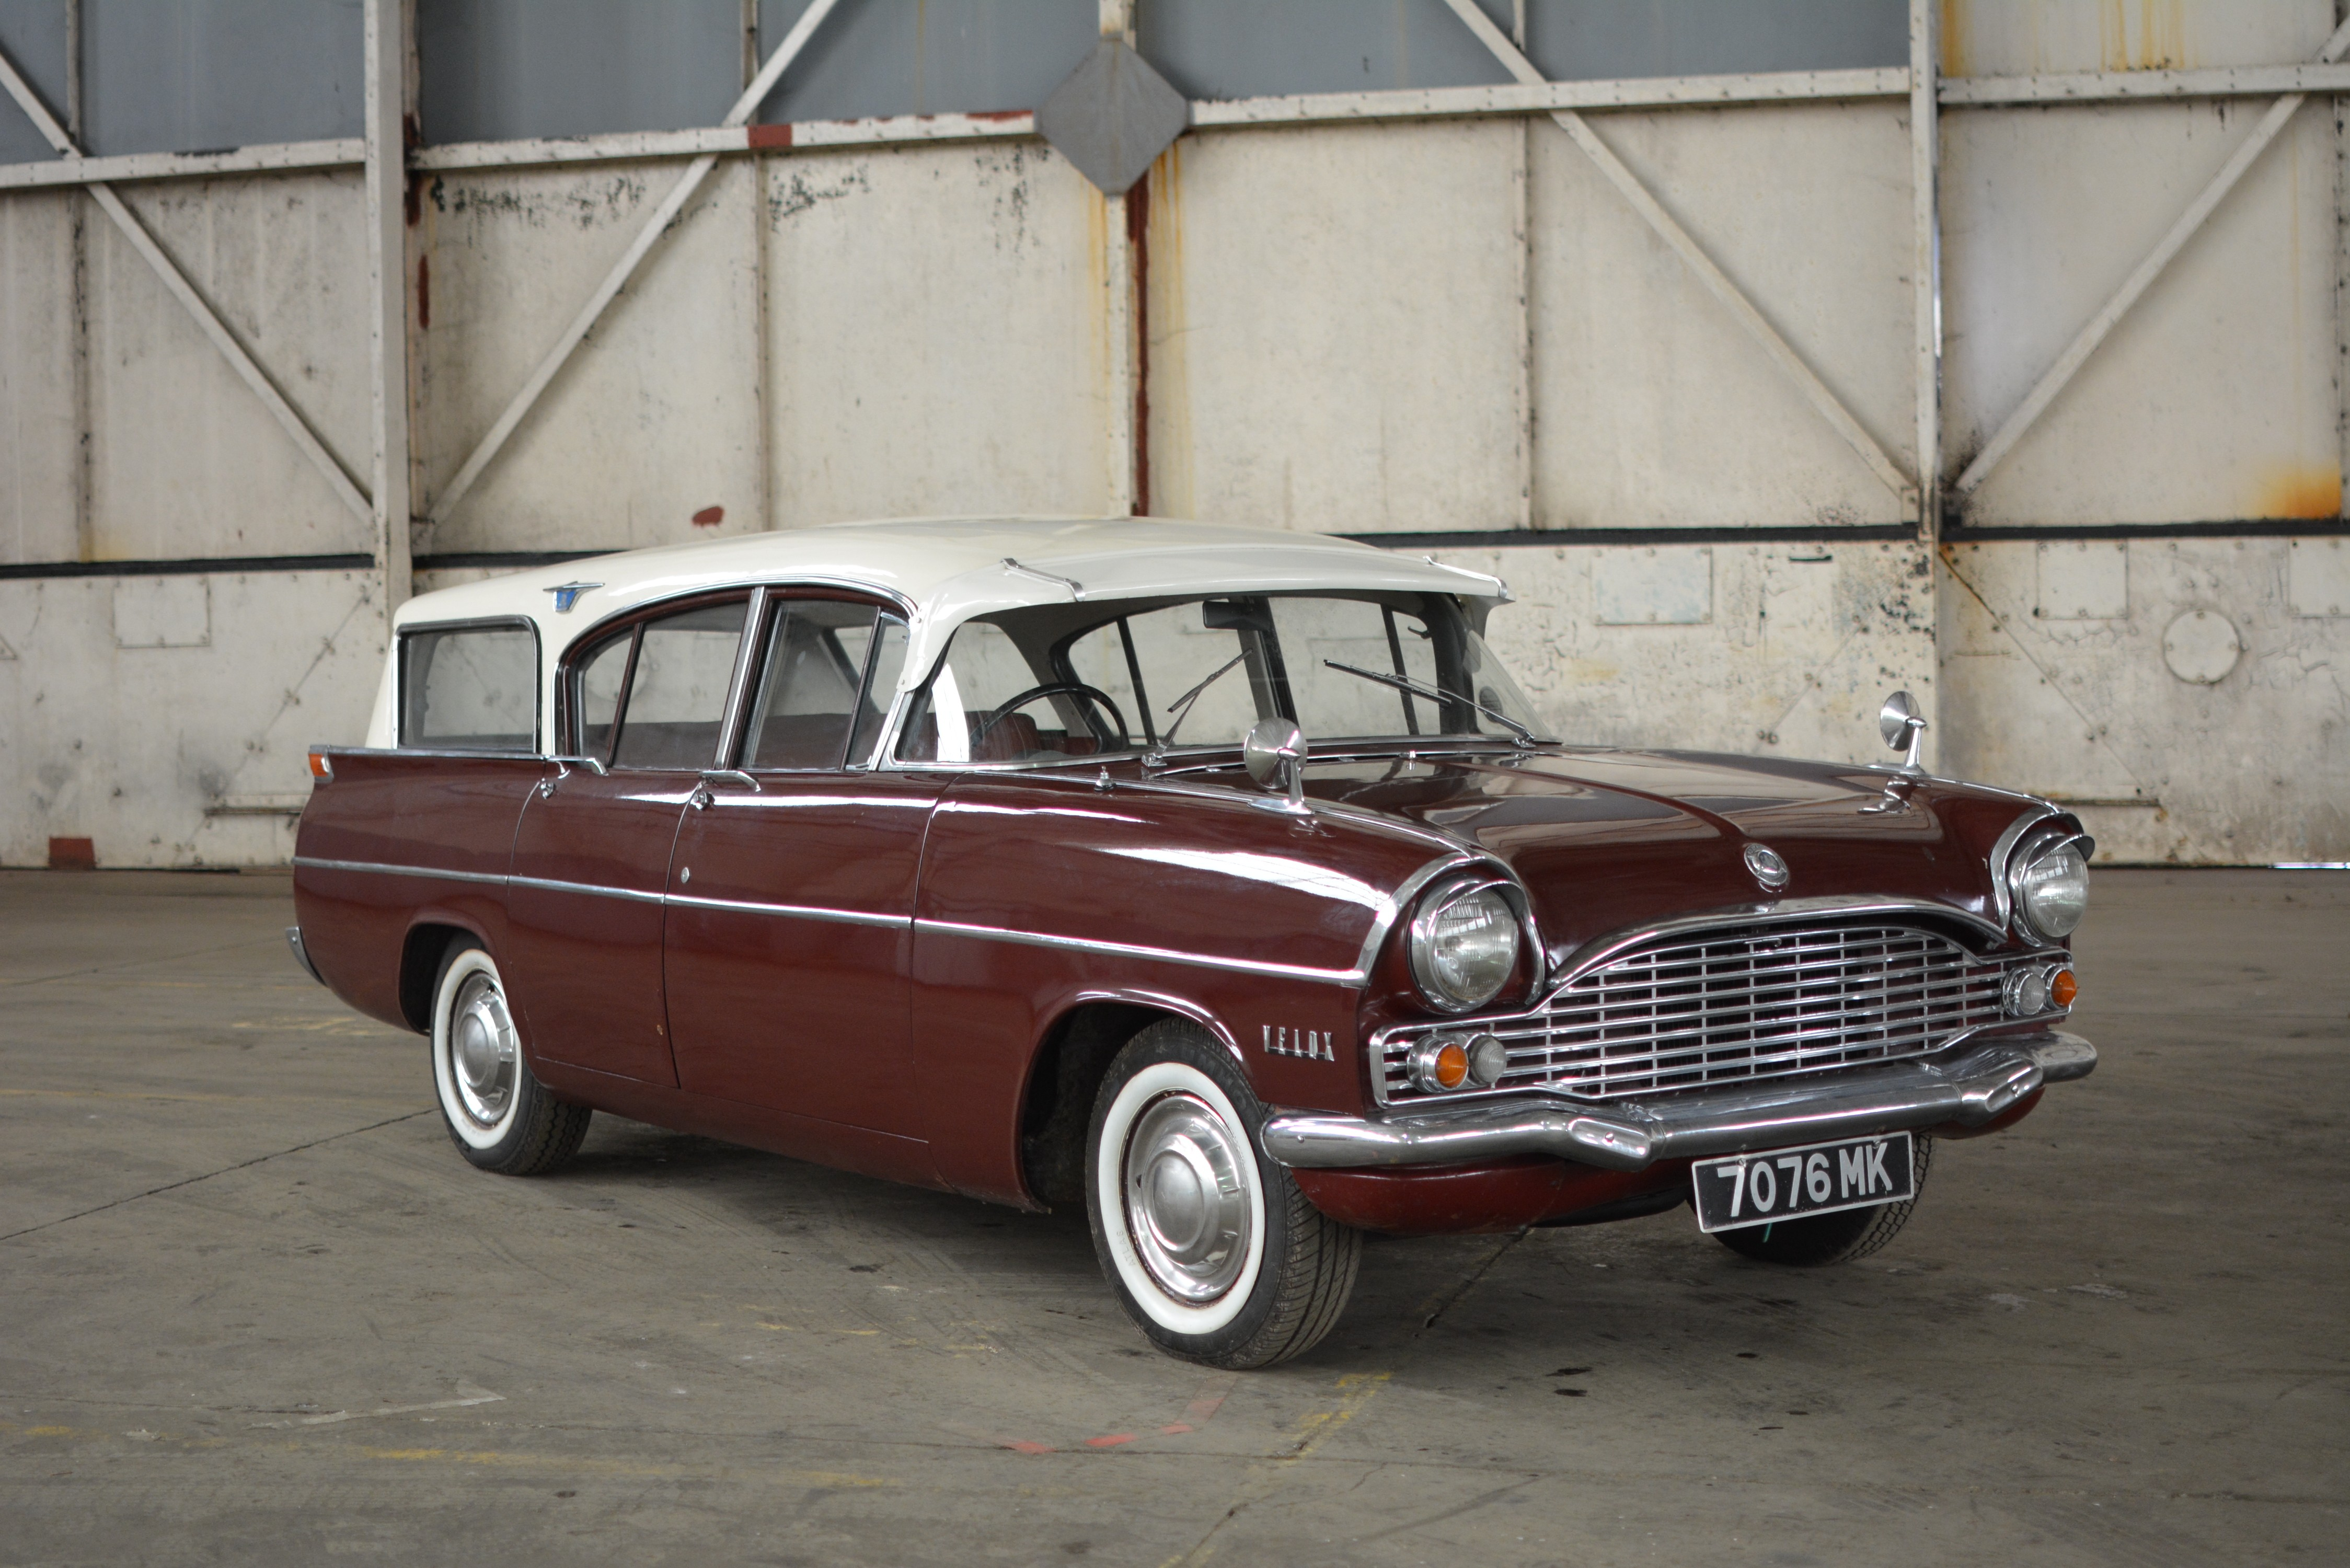 Classic & Sports Car - The London Show Brings Vintage Cars and ...